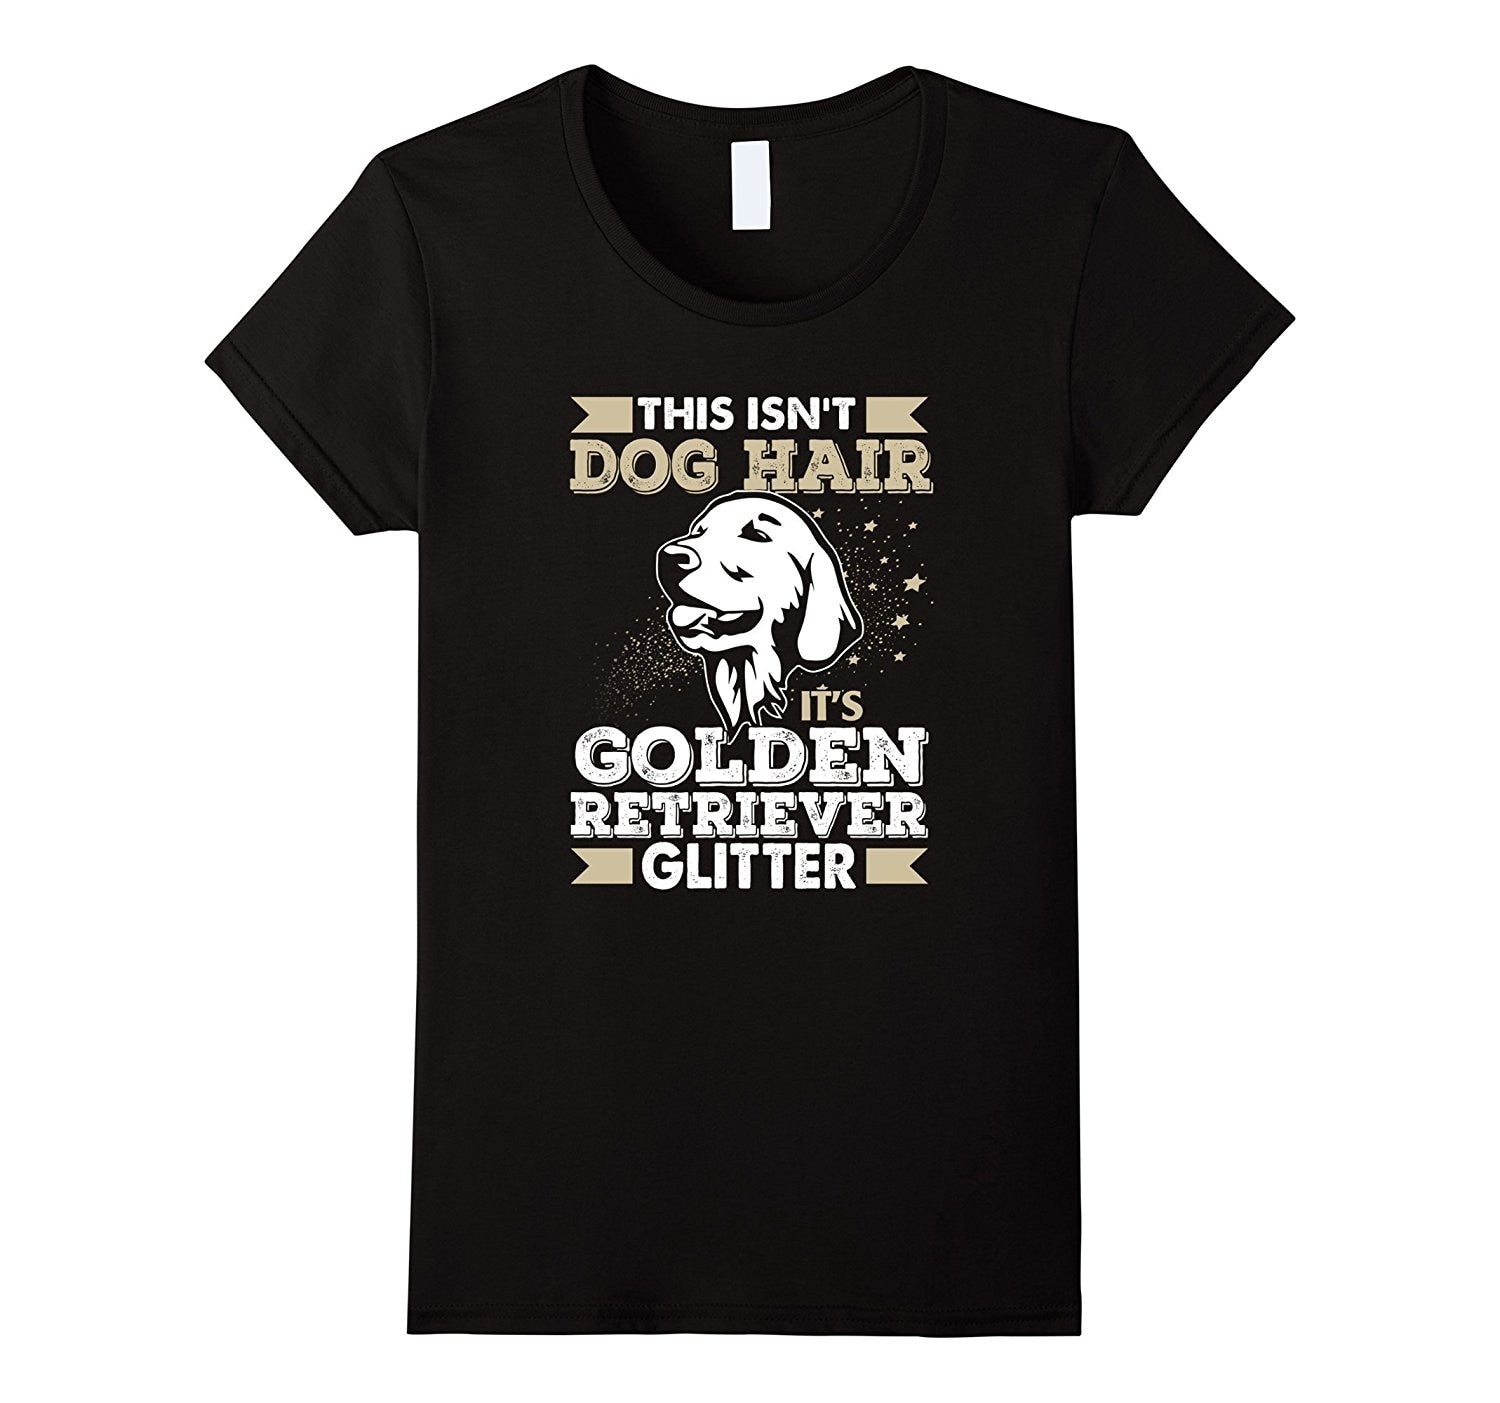 Golden Retriever - T-Shirt für Hundefans in 3D Druck